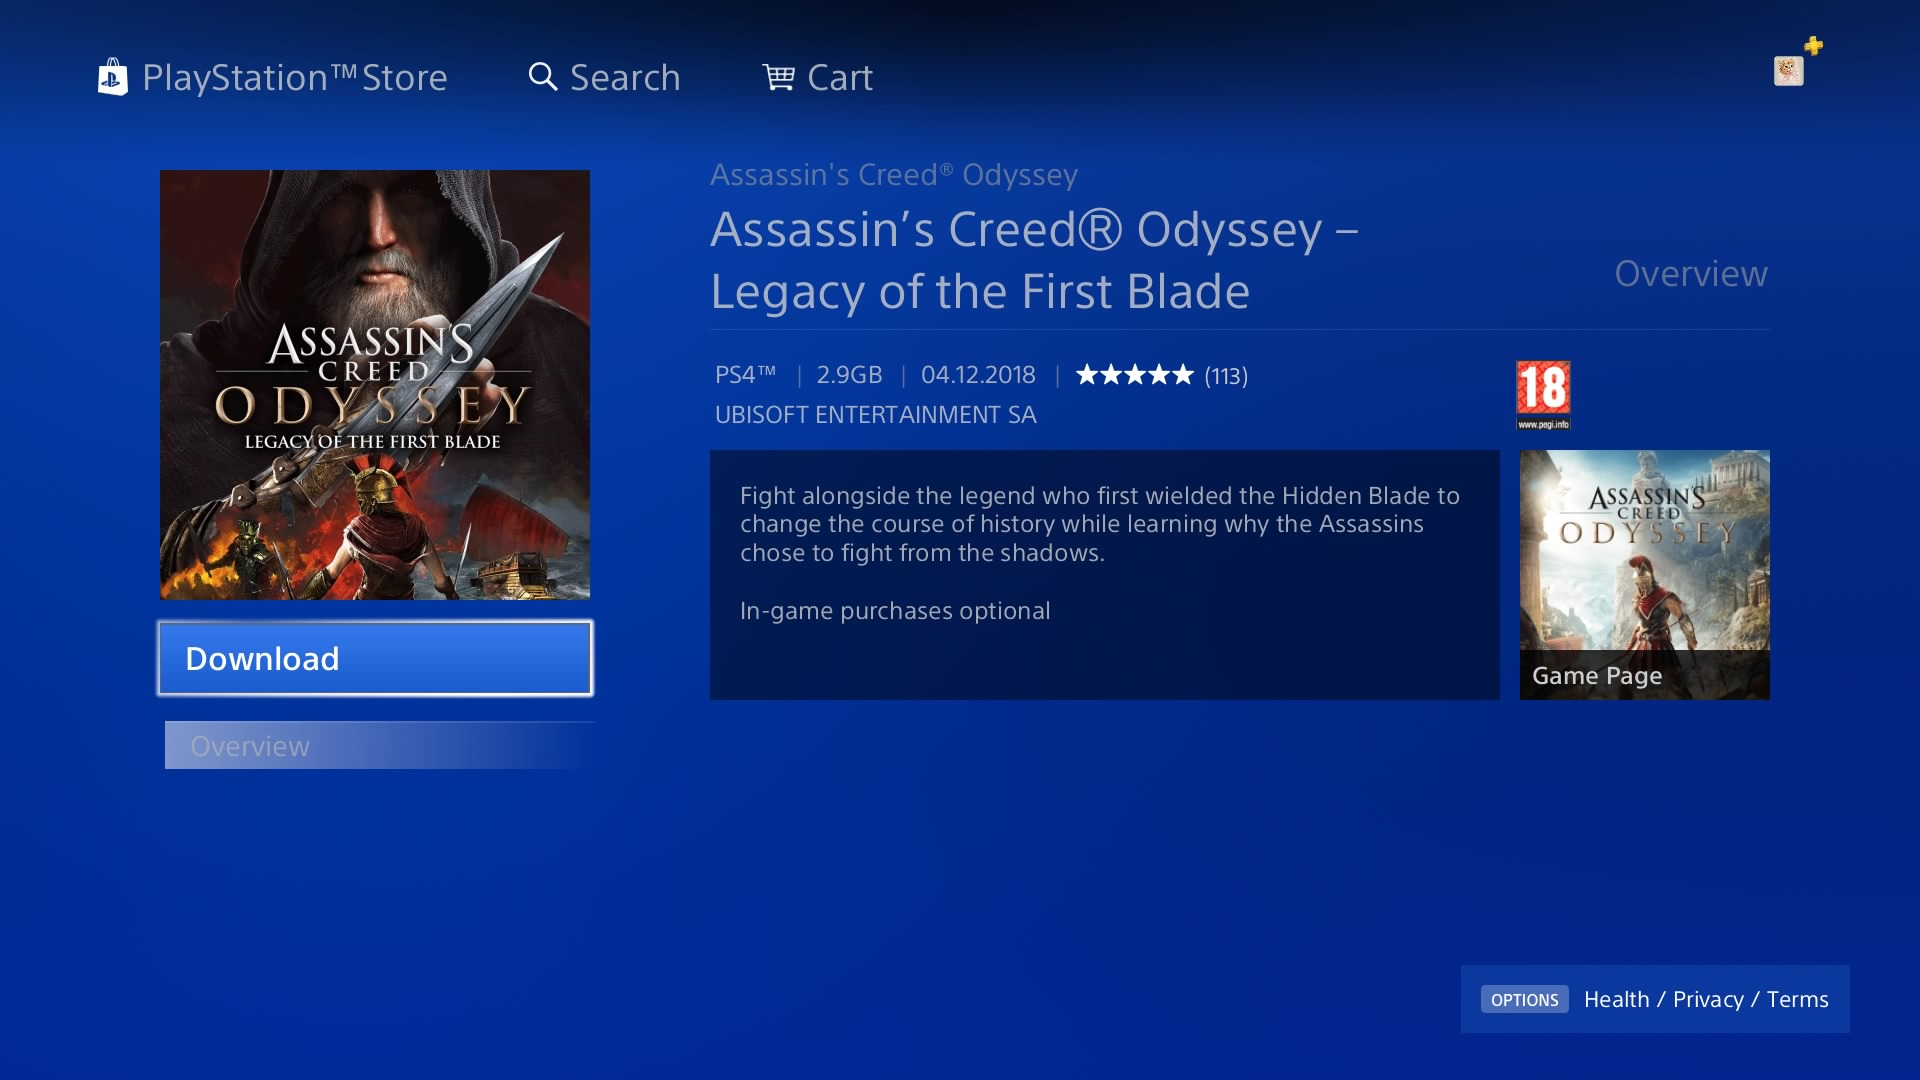 How to start the Assassin's Creed Odyssey - Legacy of the